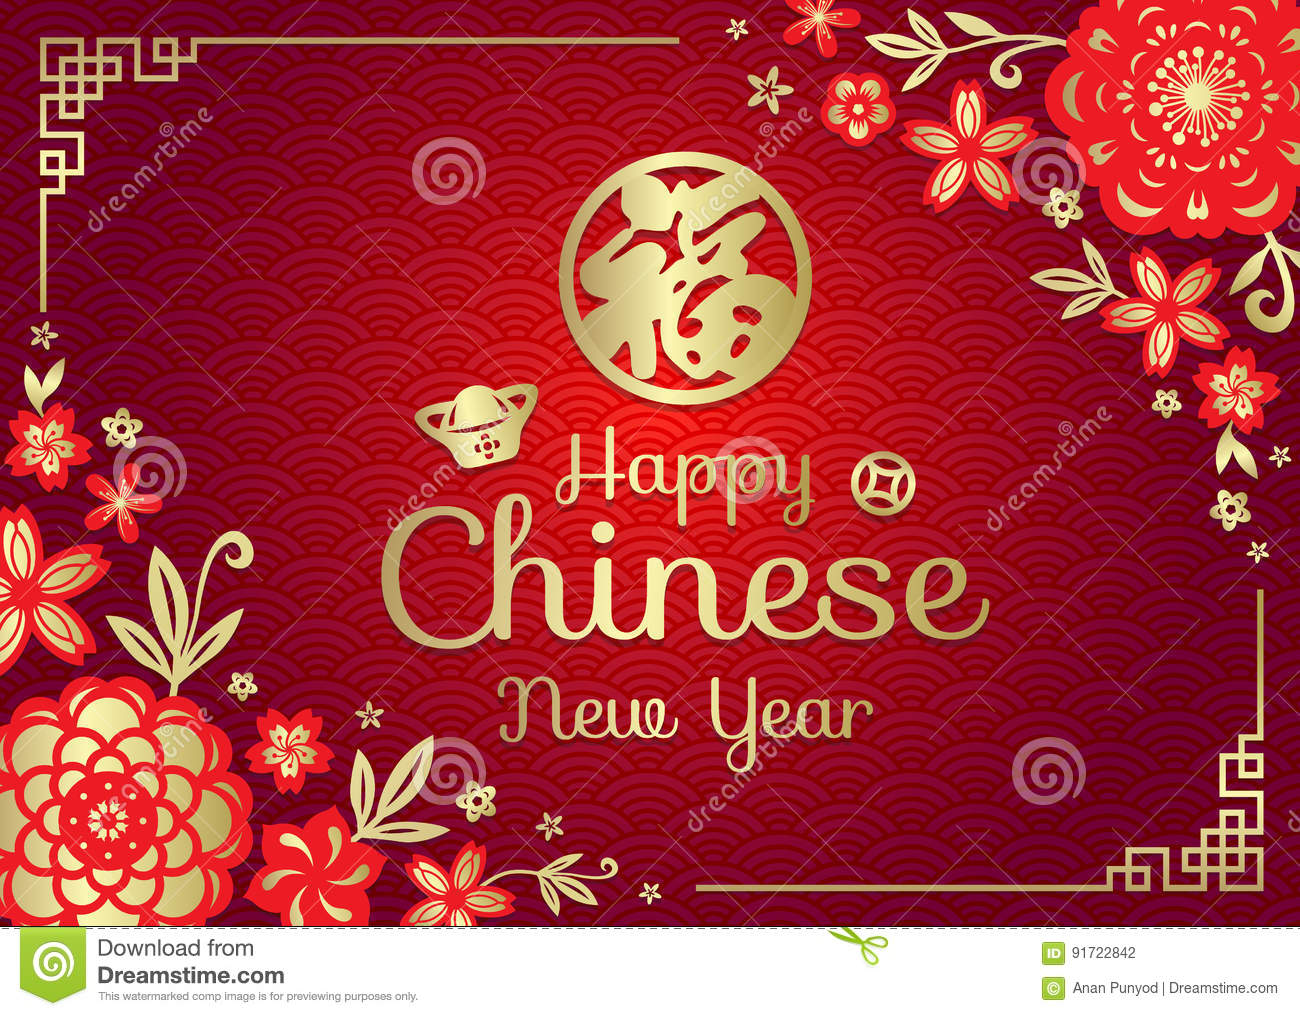 Happy chinese new year card with chinese word mean good fortune in happy chinese new year card with chinese word mean good fortune in circle and paper cut flowers china frame art vector design kristyandbryce Choice Image